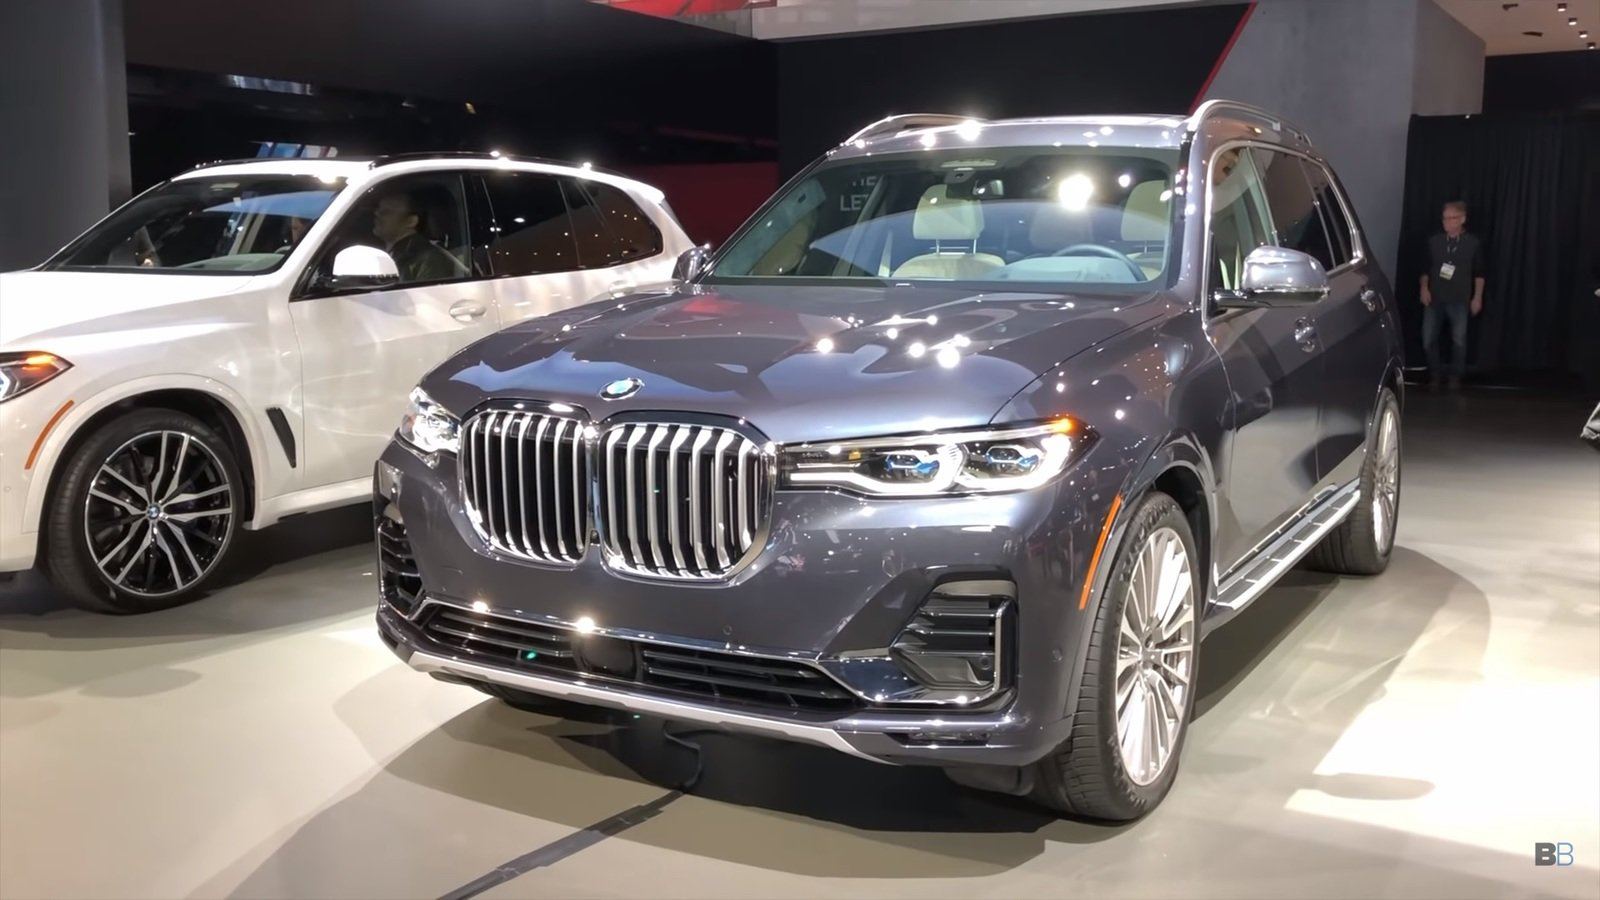 3 Row Seating Suv >> Check Out This Nice Demo Of The 2019 BMW X7's Third-Row Seating | Top Speed